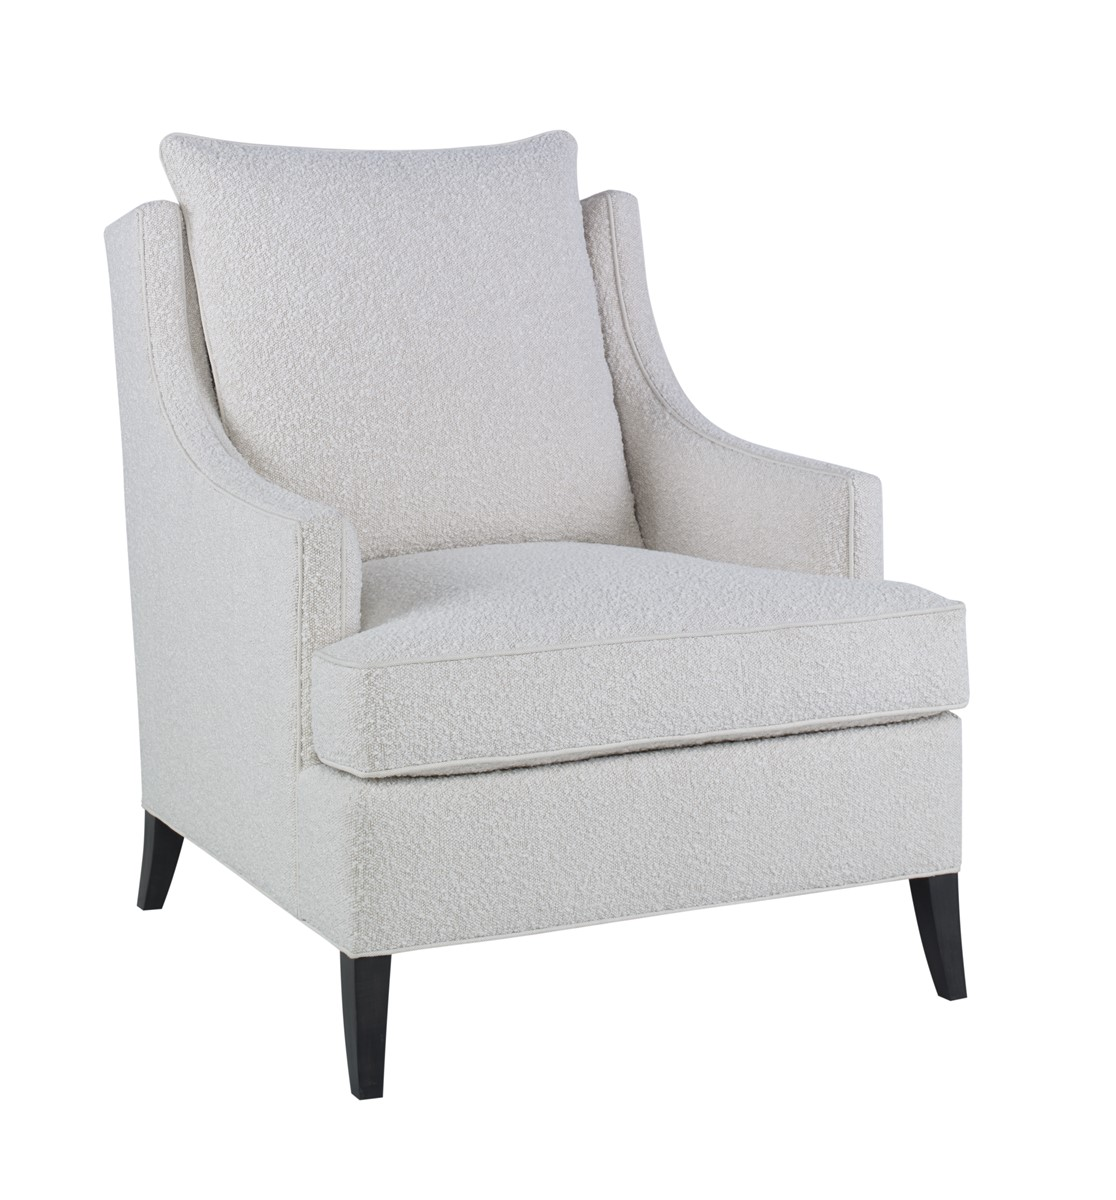 Fantastic Rachel Chair With Exposed Legs U1866 1 Chaddock Collection Short Links Chair Design For Home Short Linksinfo